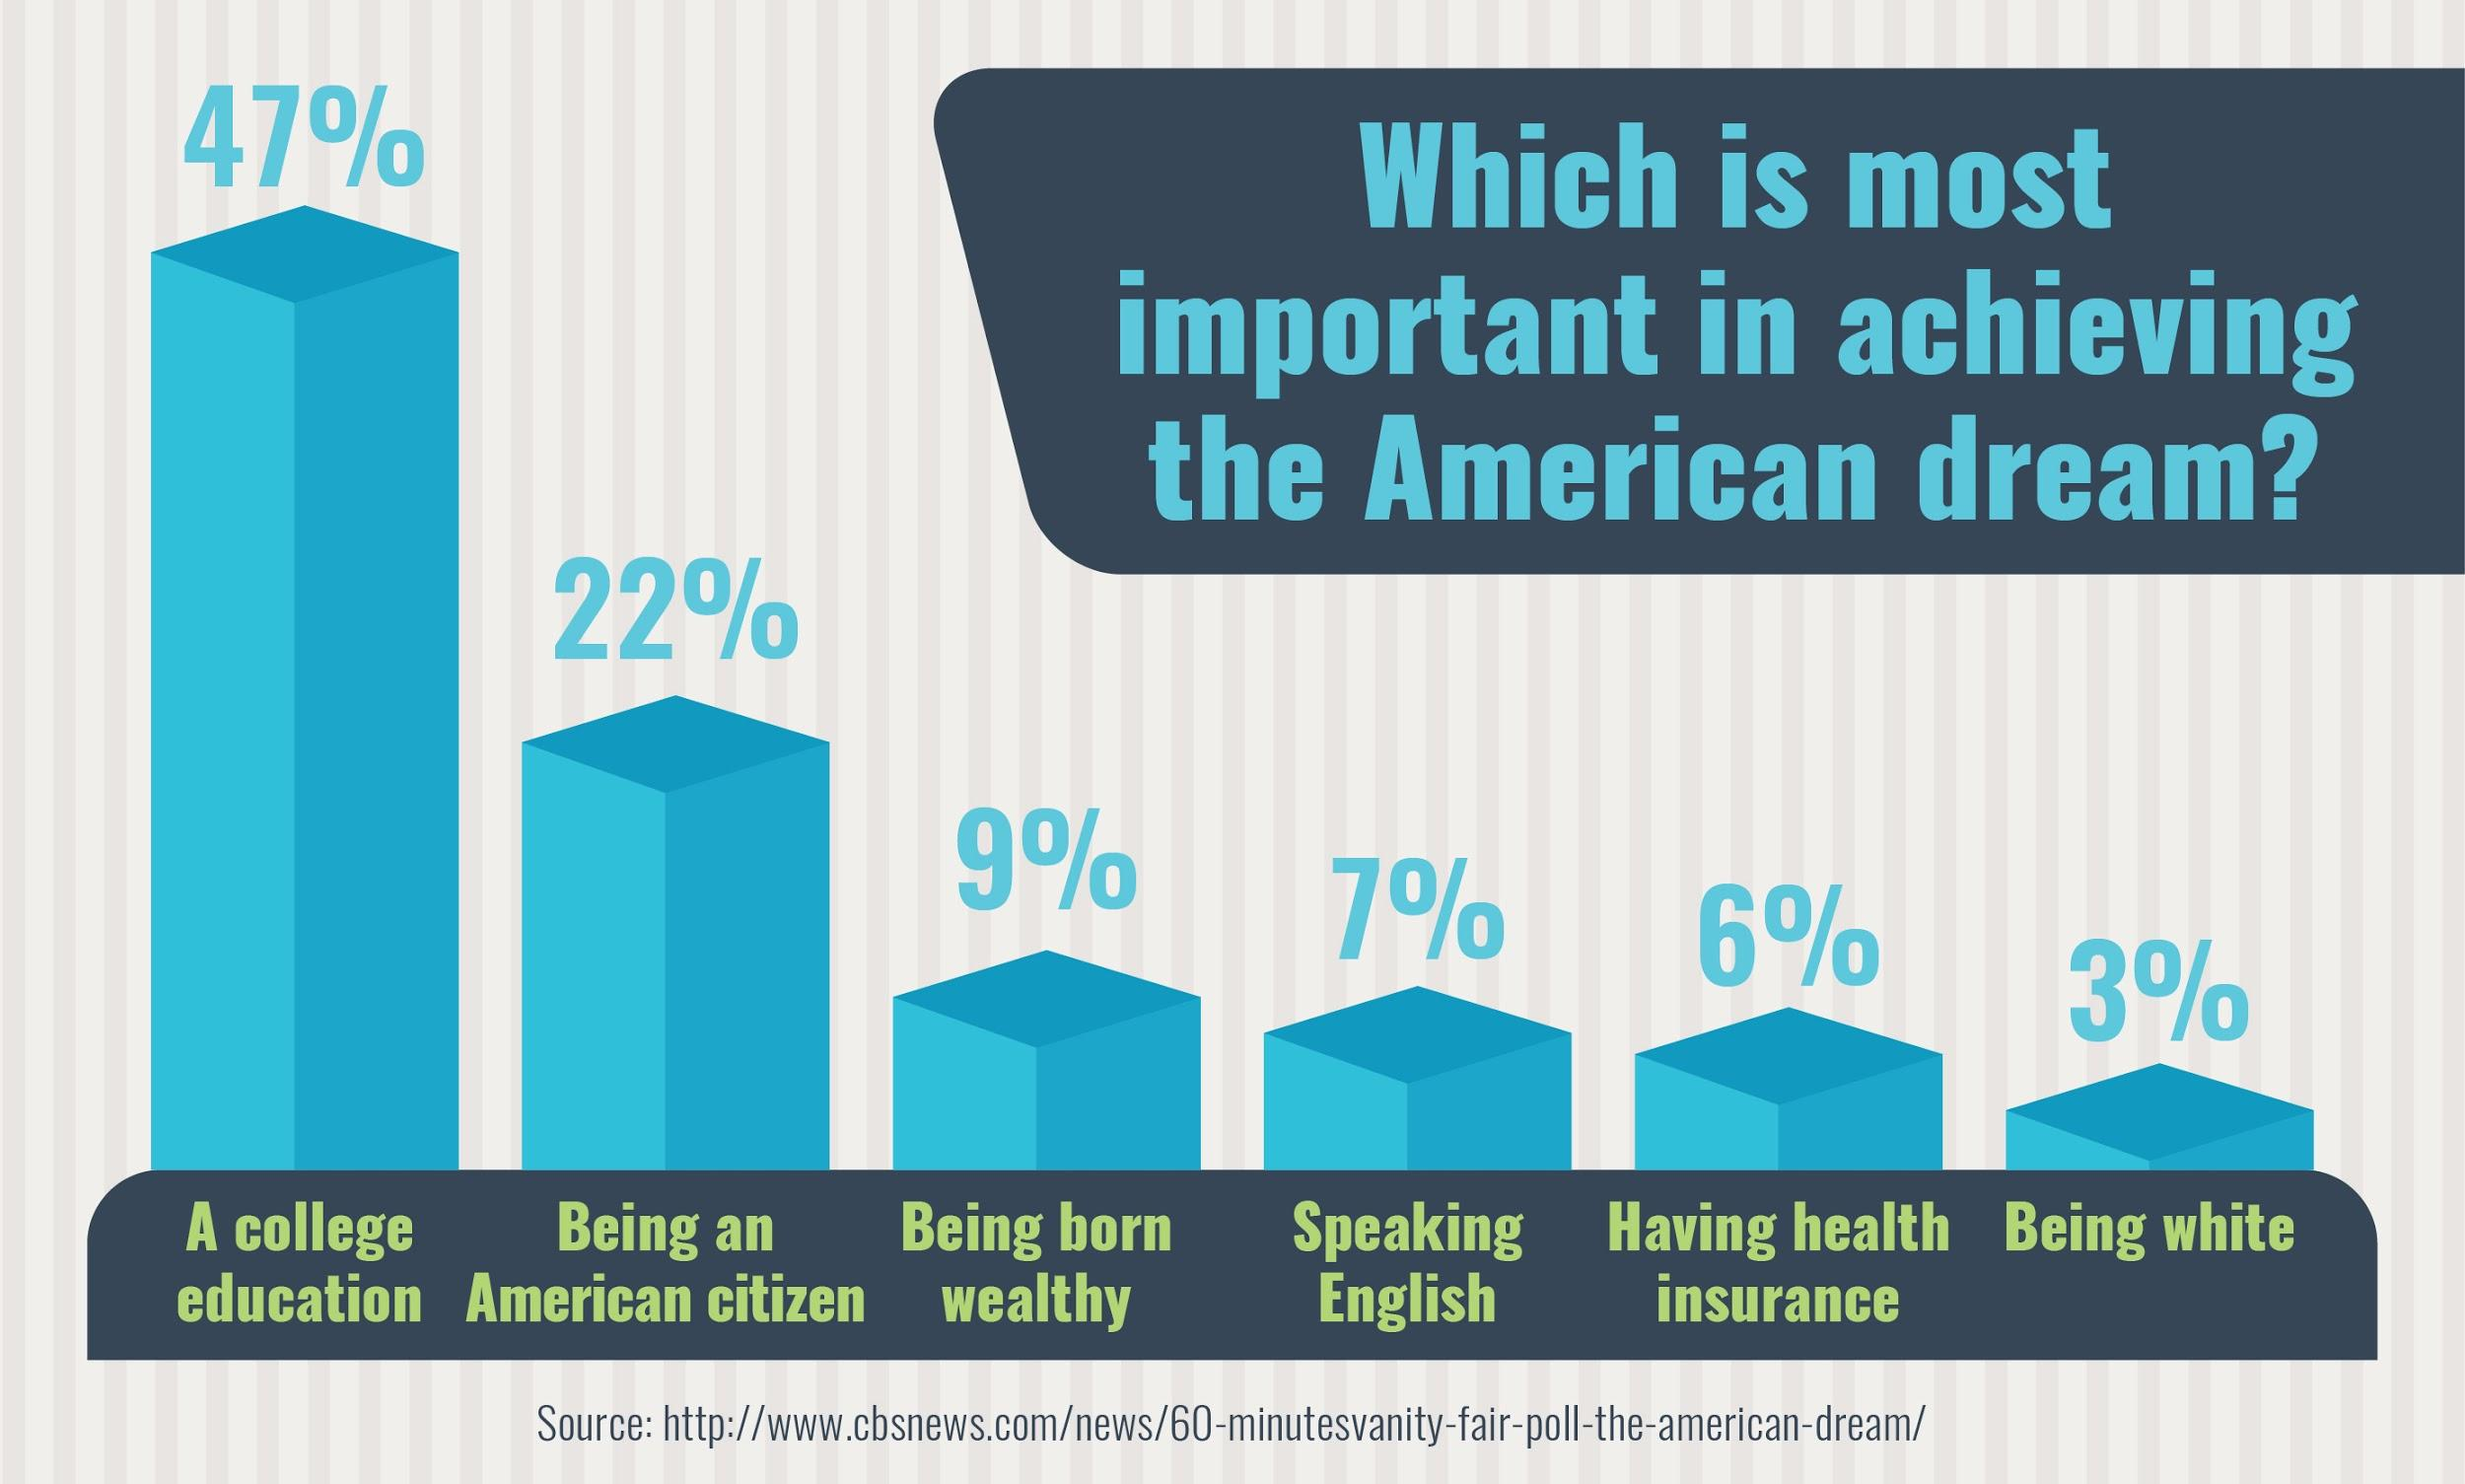 College is rated most important in chasing the American Dream